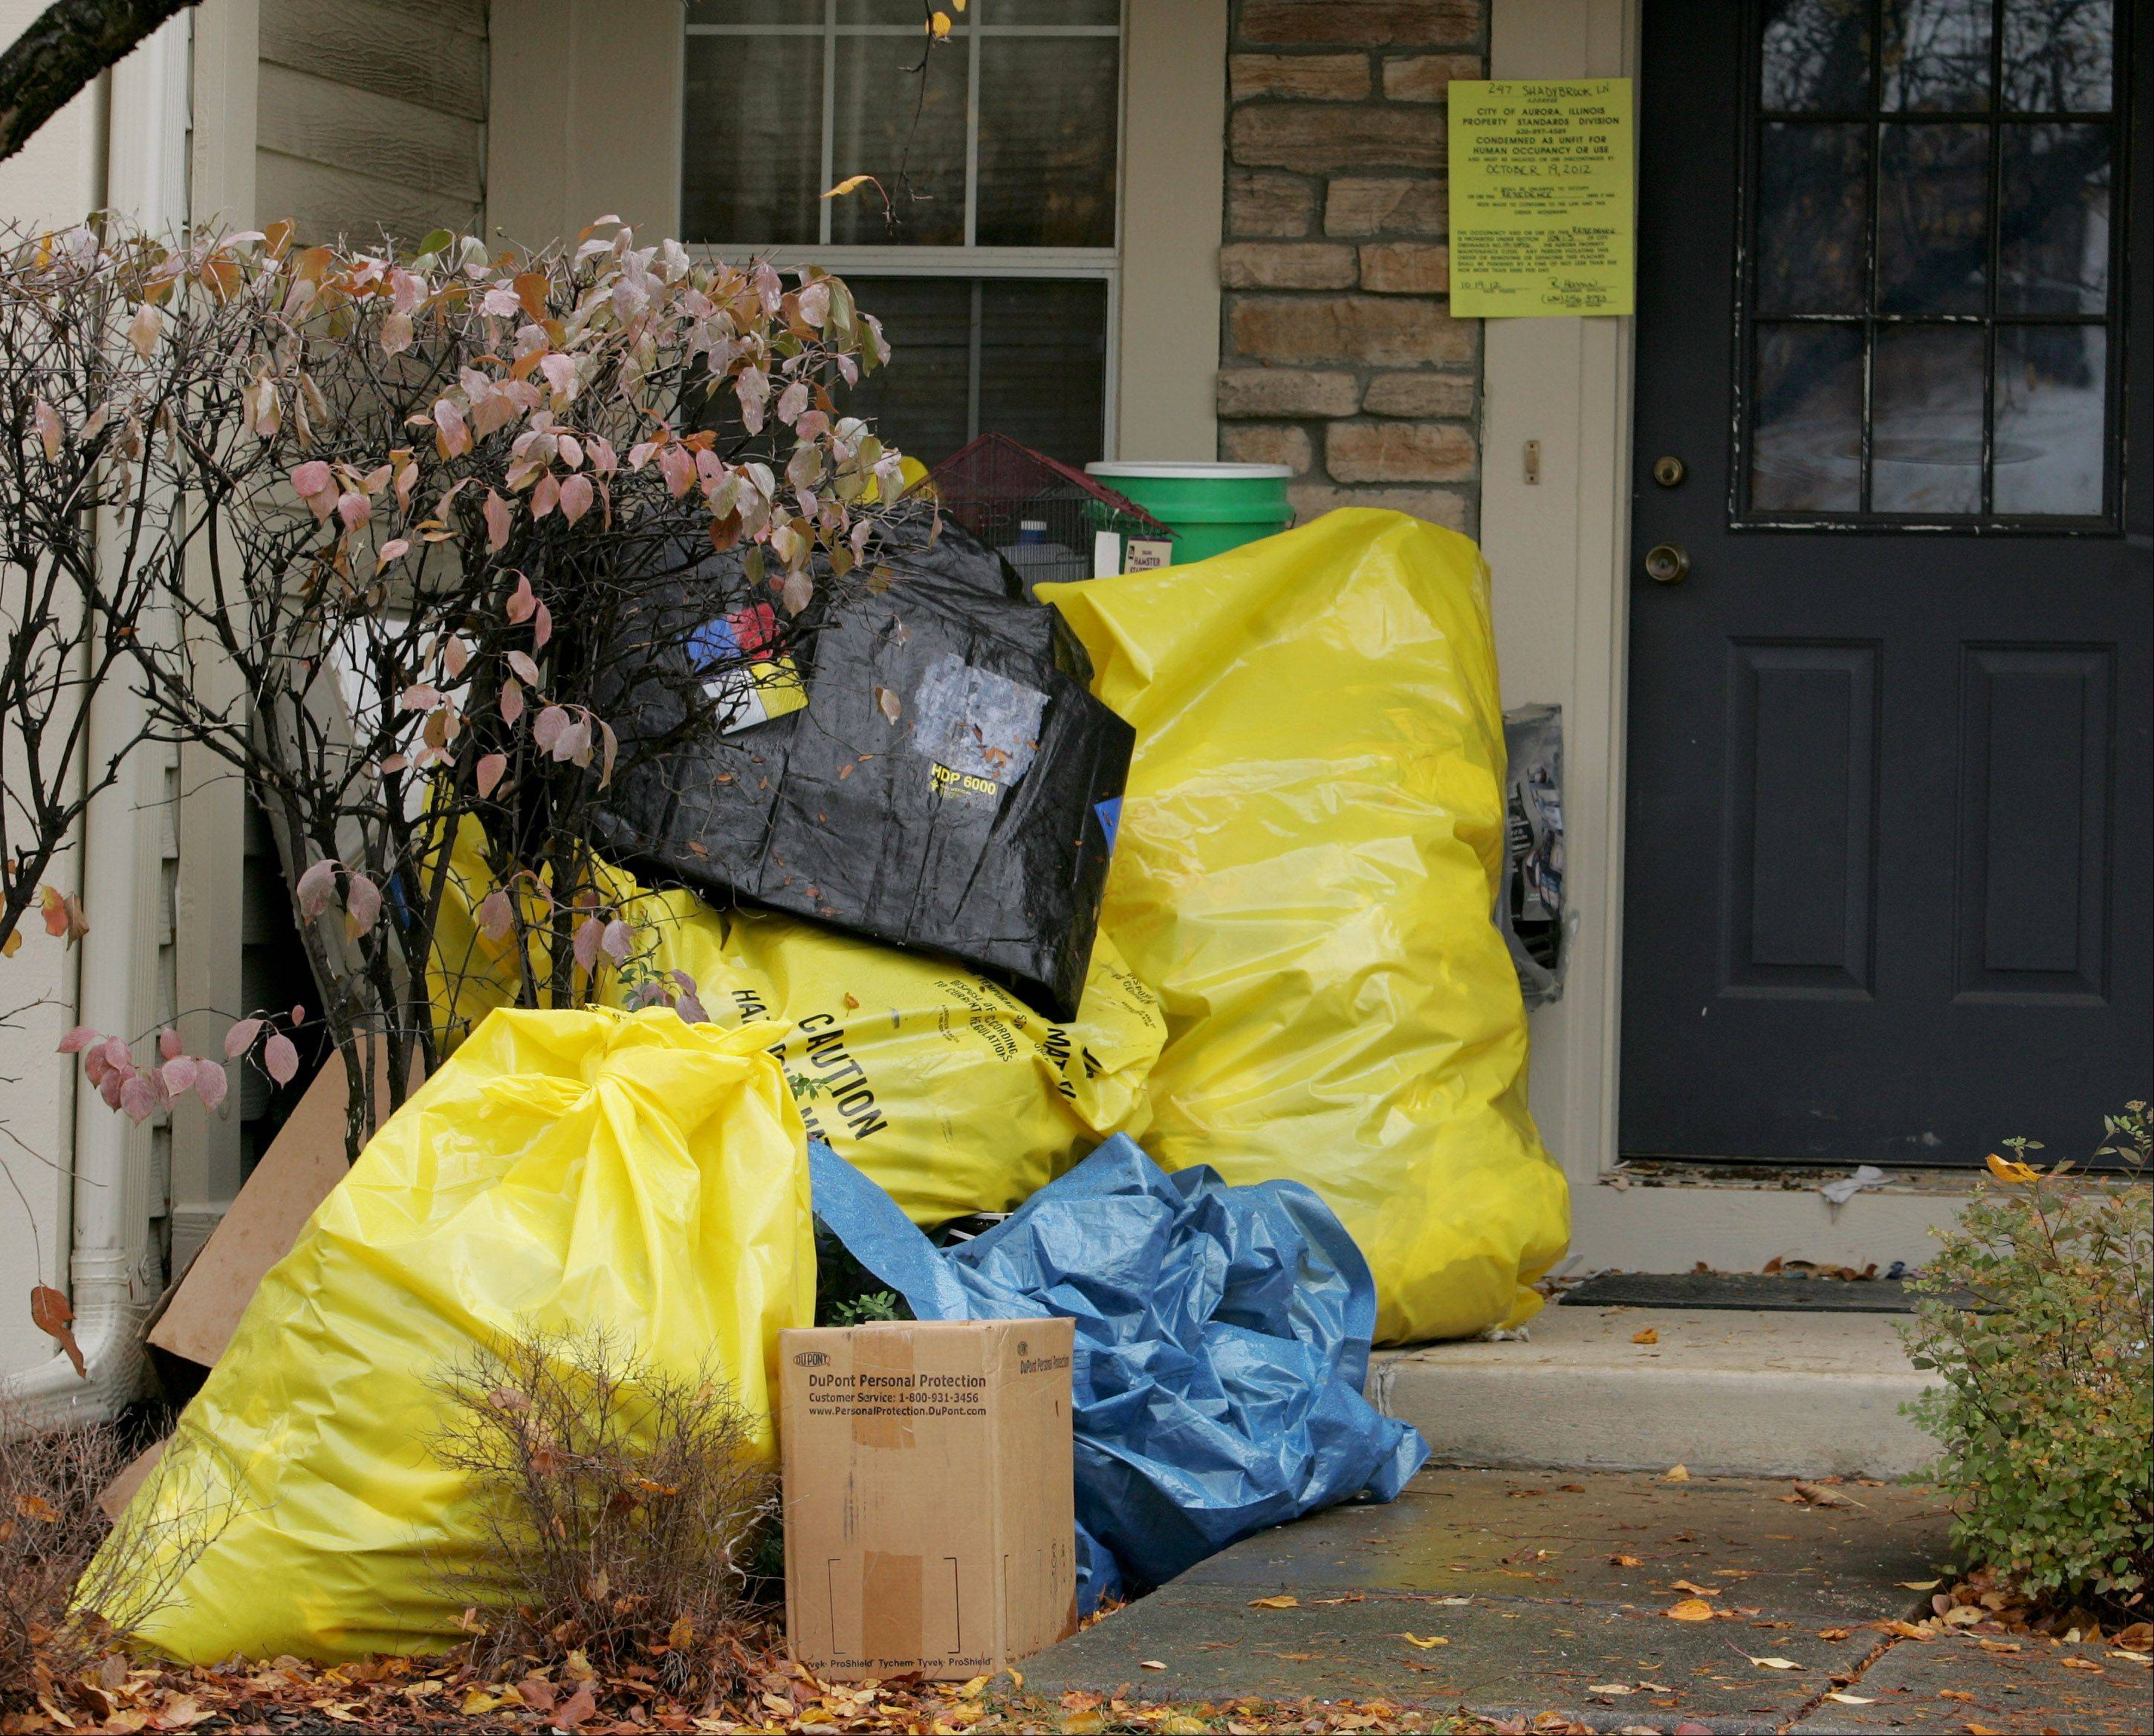 Dead birds, mounds of trash found in Aurora home